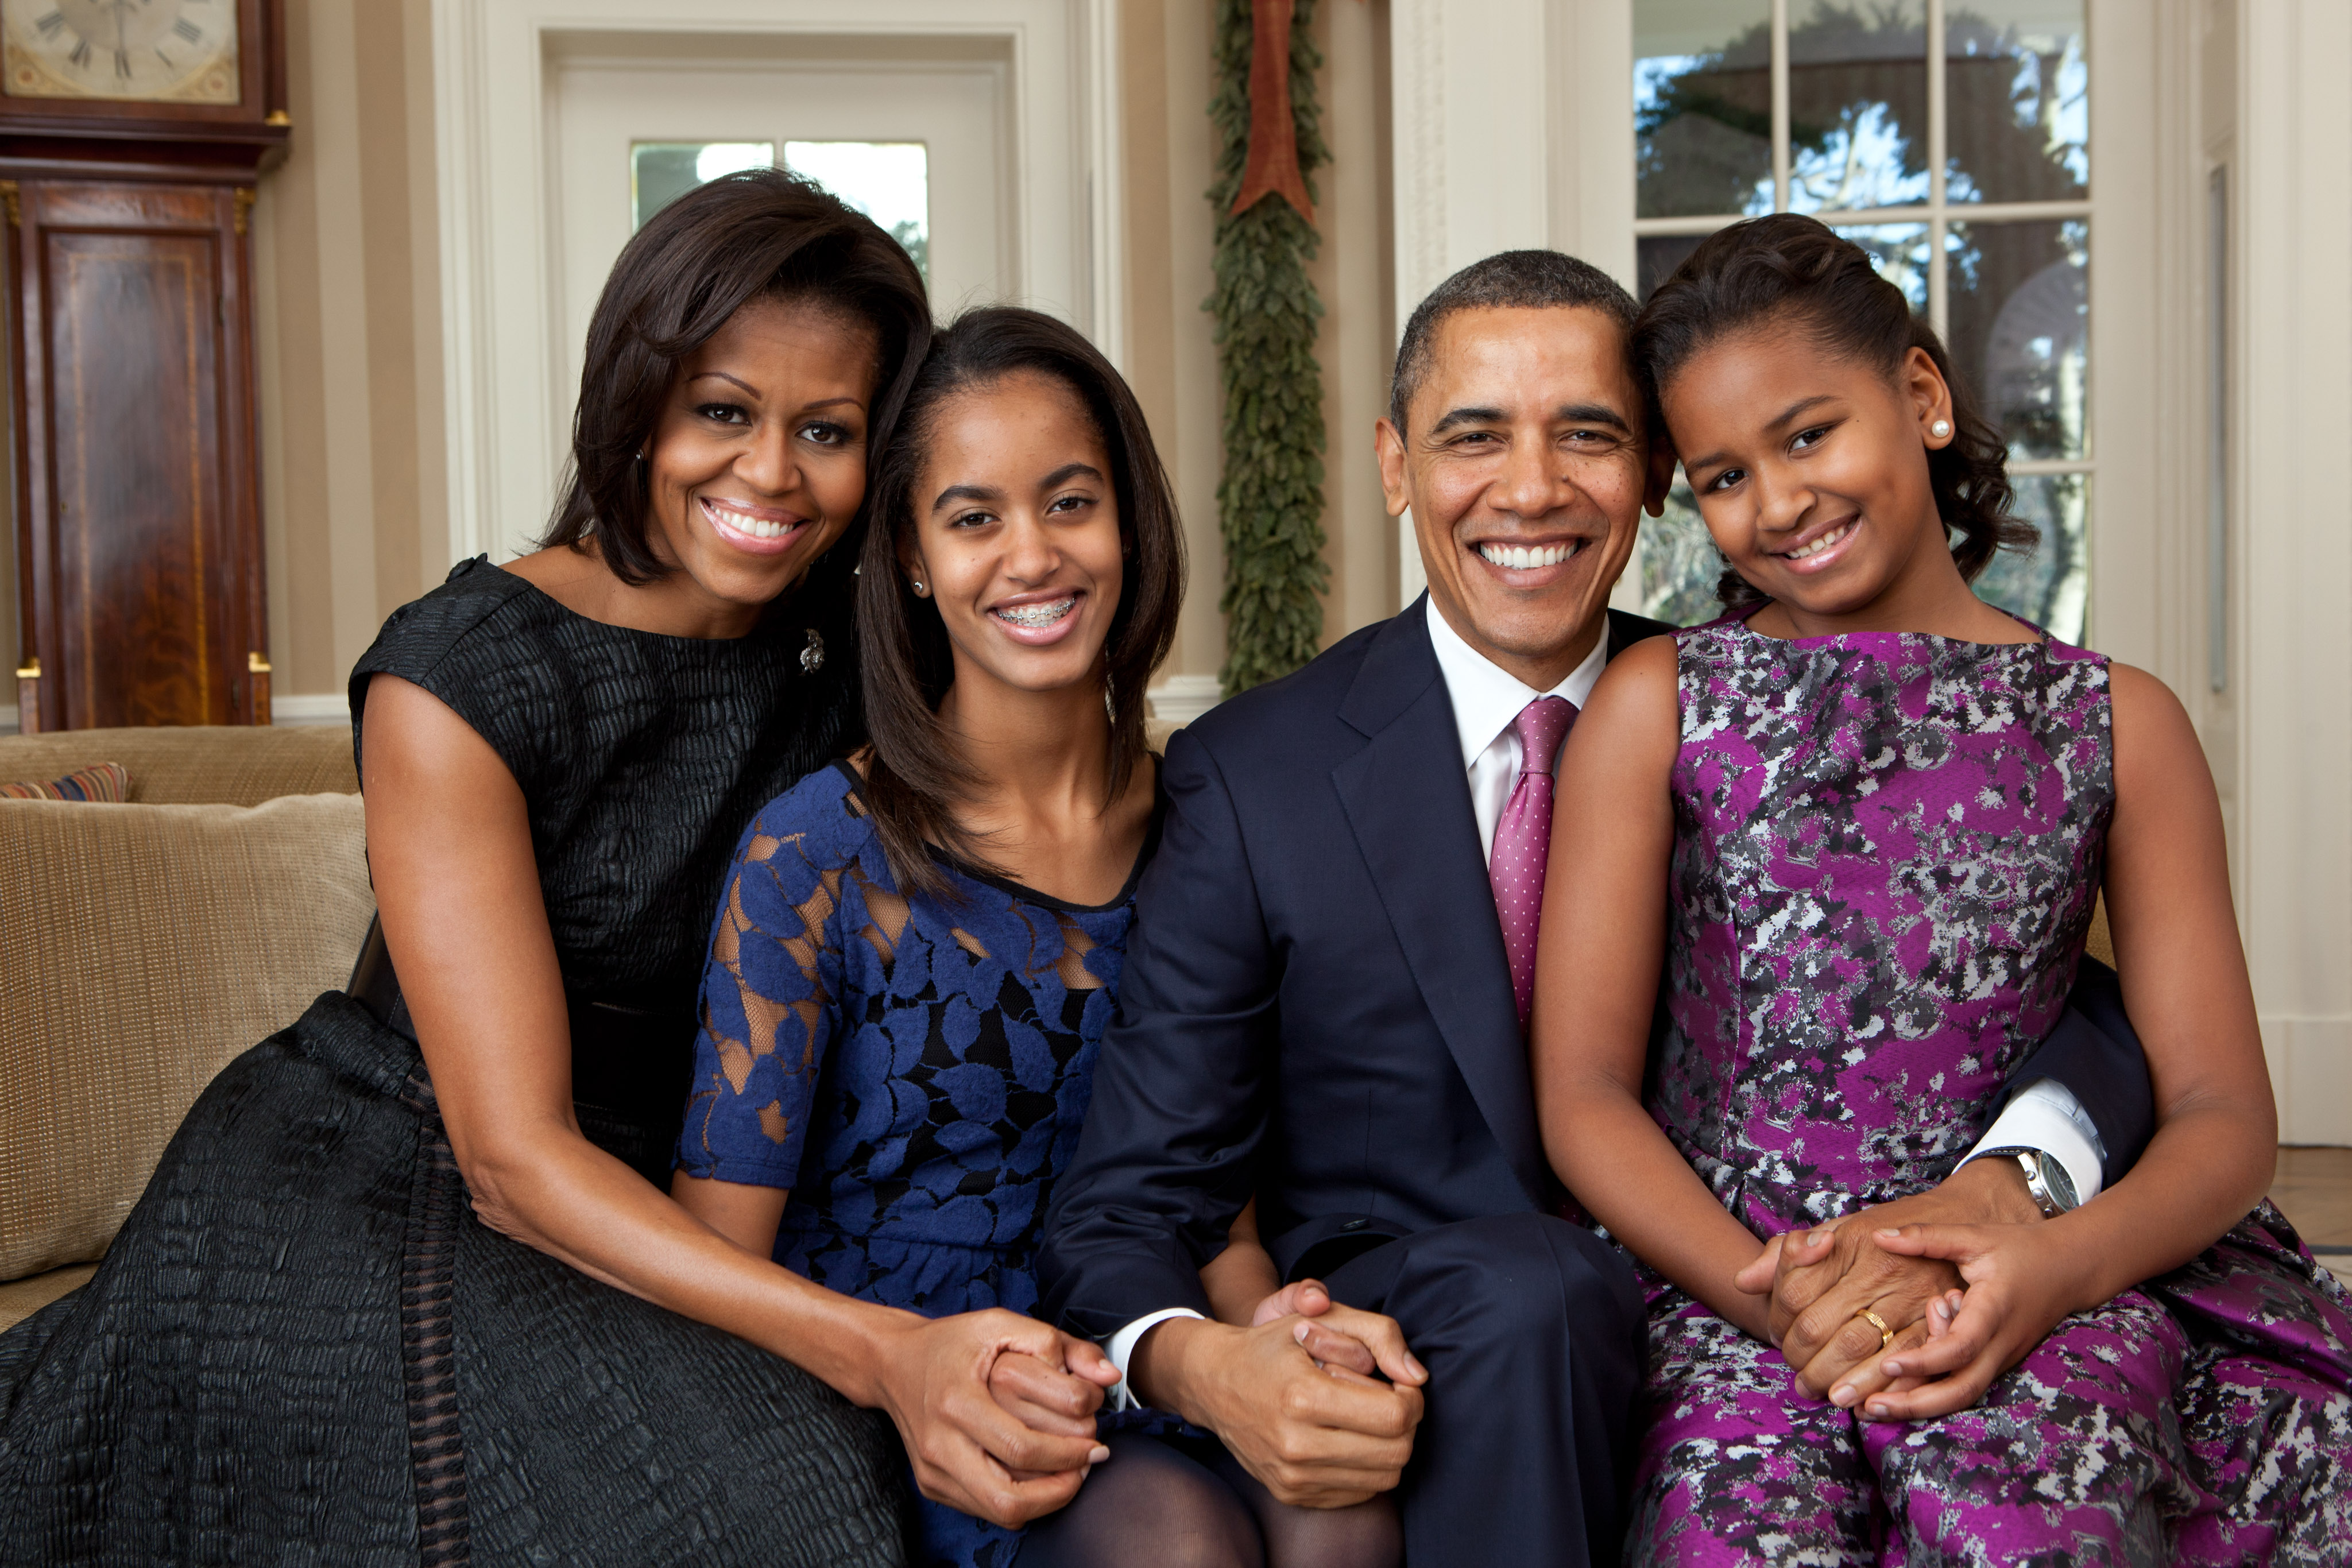 In this handout file photo provided by the White House, (L - R) First Lady Michelle Obama, Malia Obama, U.S. President Barack Obama and Sasha Obama, sit for a family portrait in the Oval Office on December 11, 2011 in Washington, D.C.